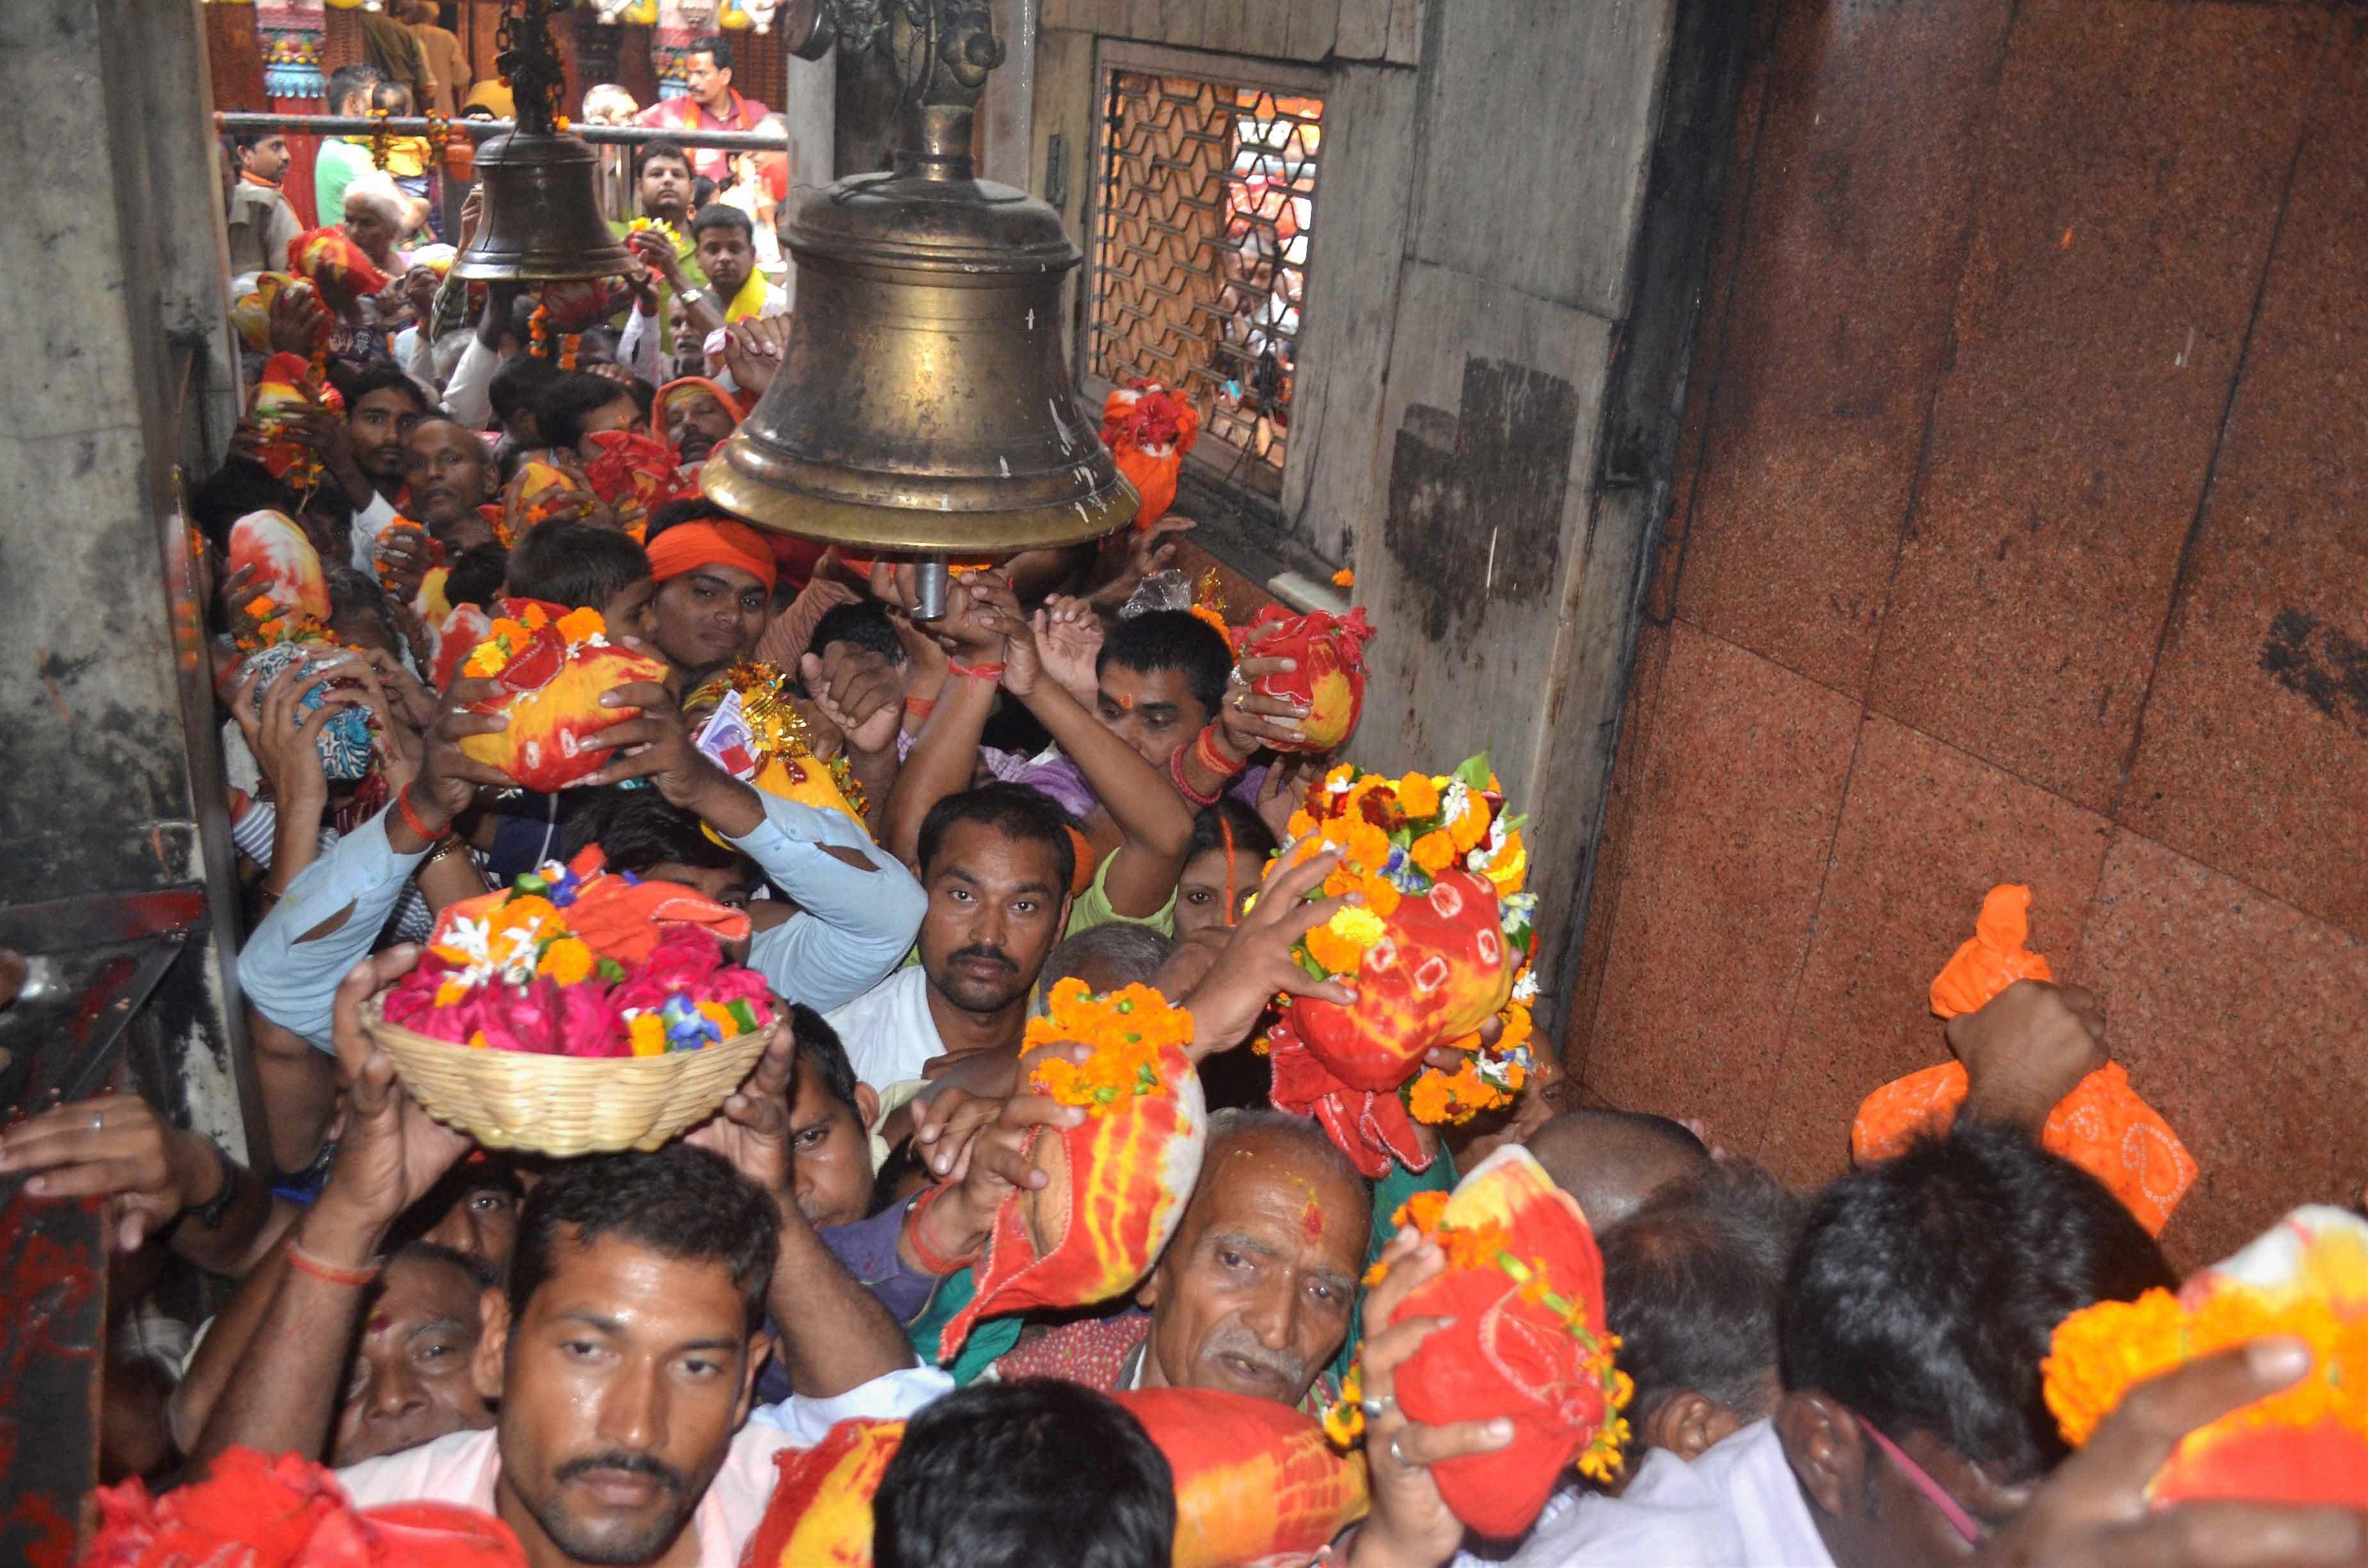 Devotees wait in a queue at the Vindhyavasini temple in Mirzapur, Uttar Pradesh, on Kartik Purnima. (Credit: PTI)